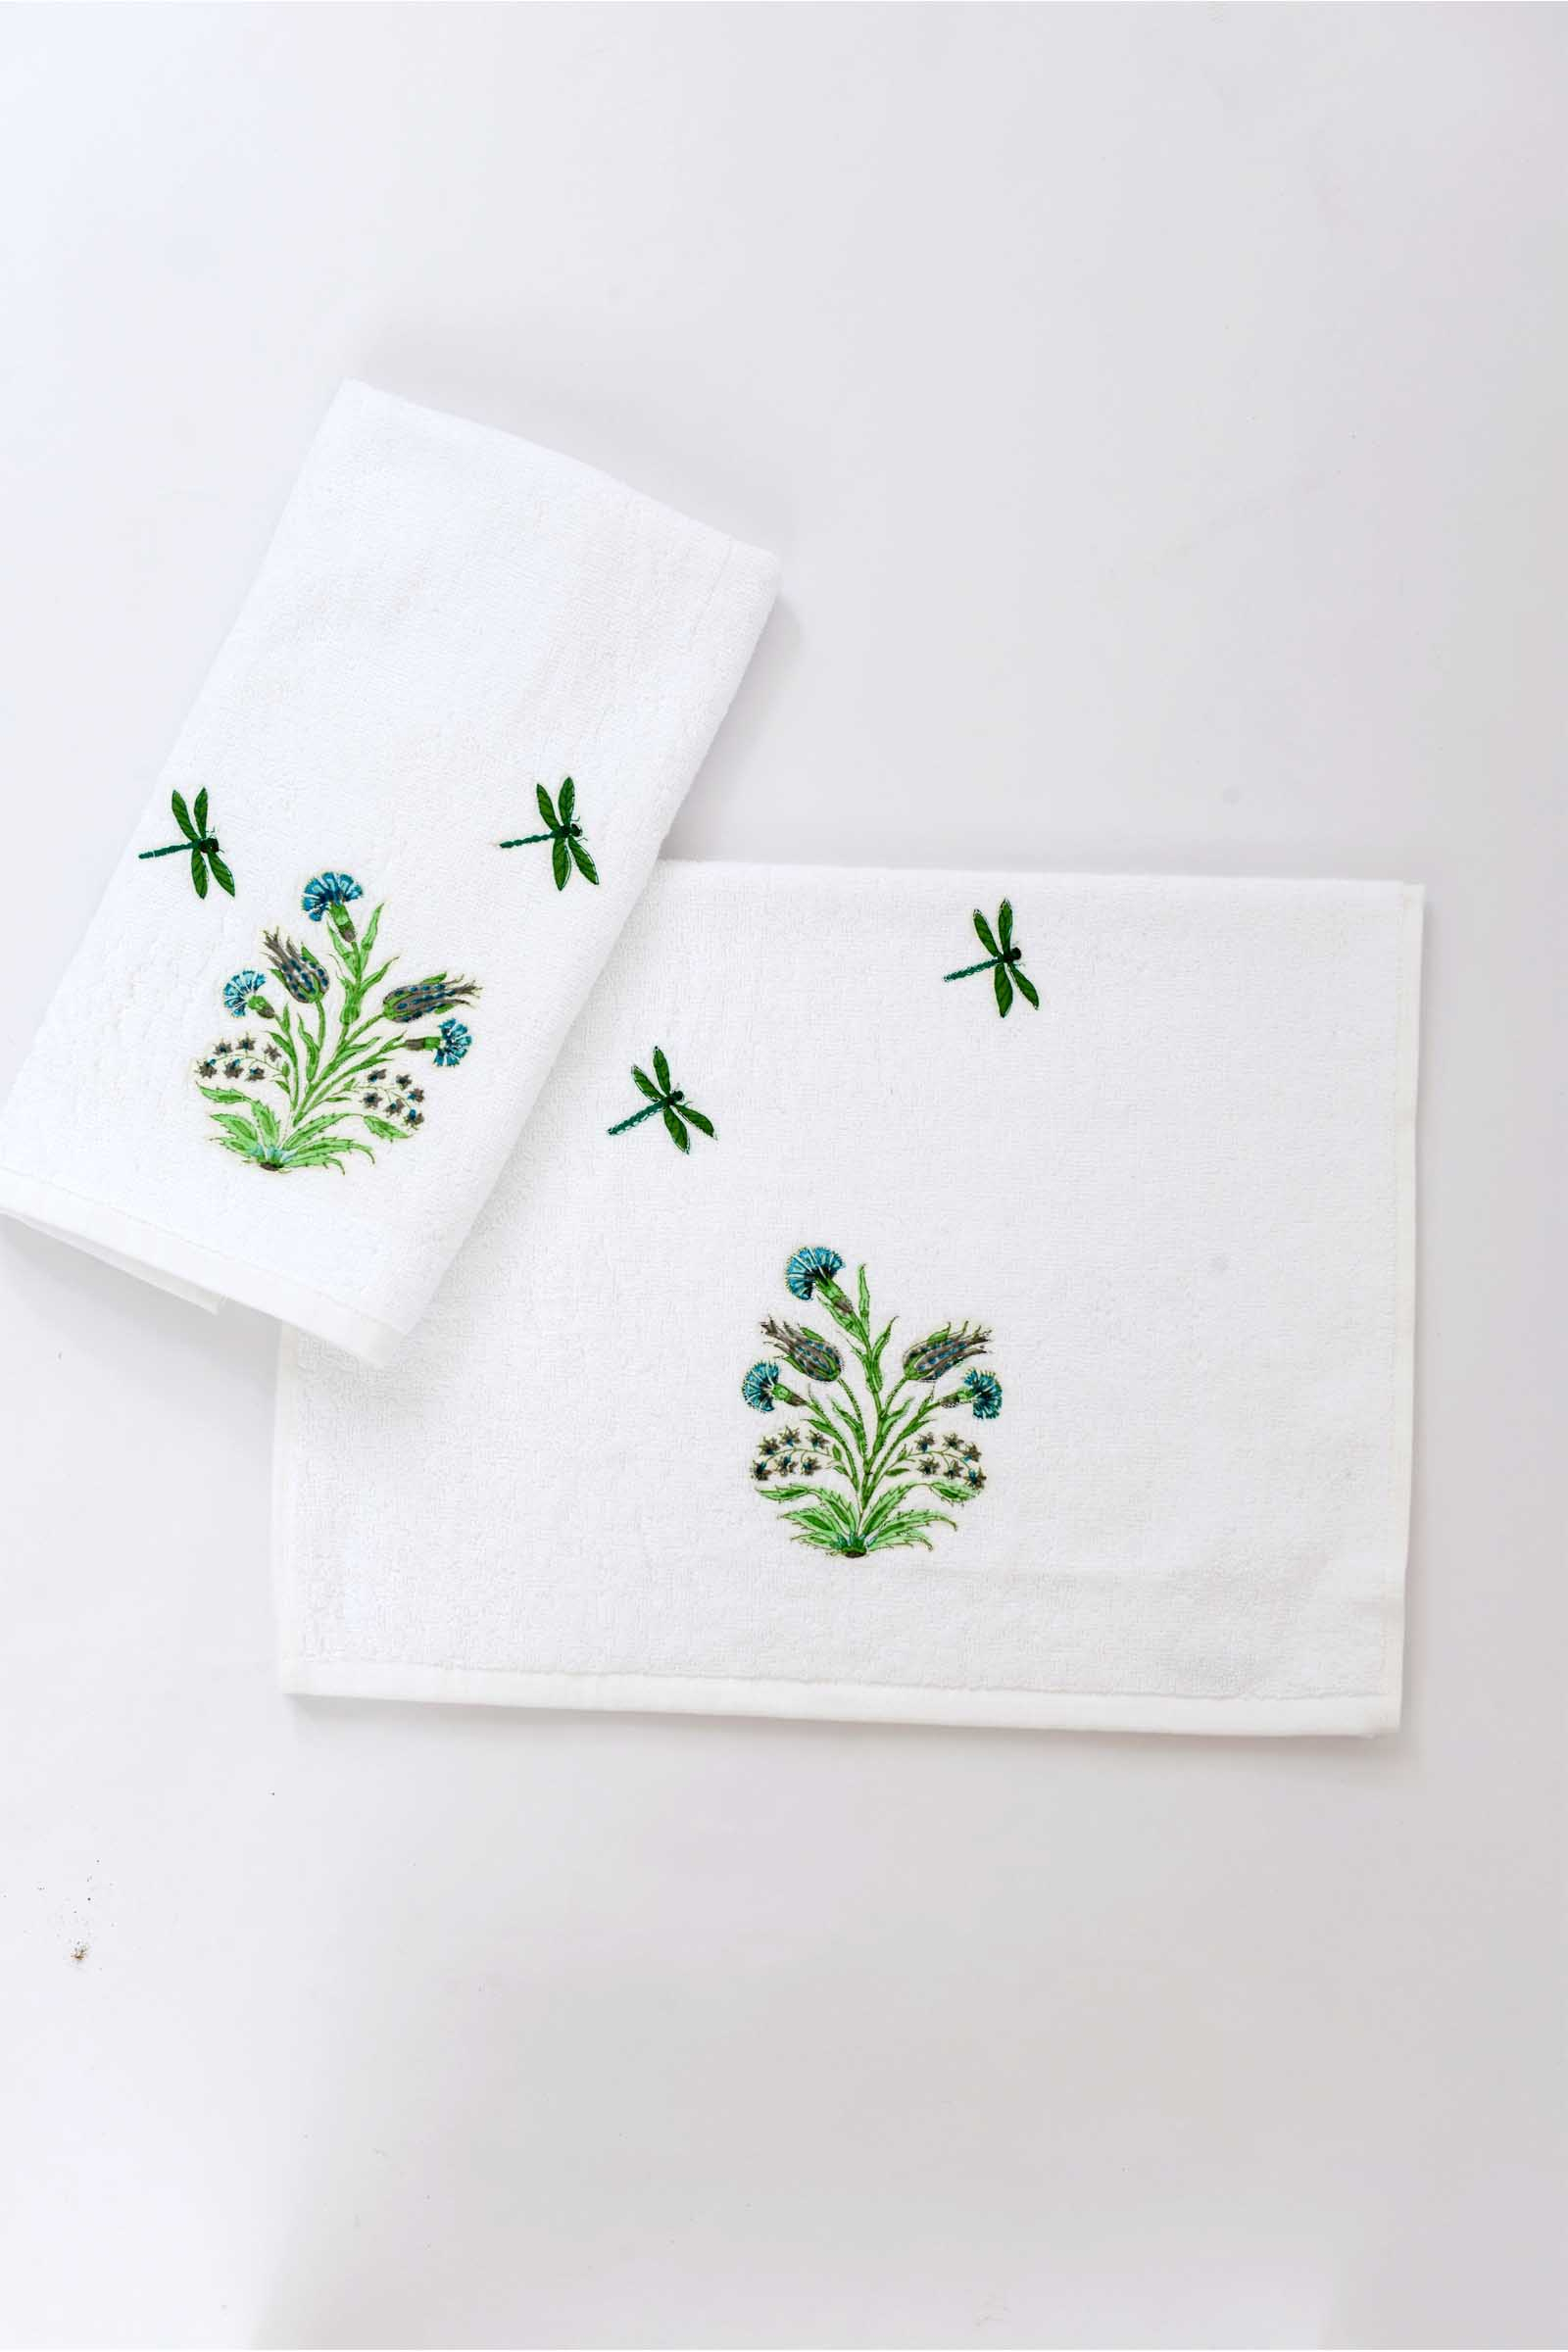 Mughal garden hand towel (set of 2)